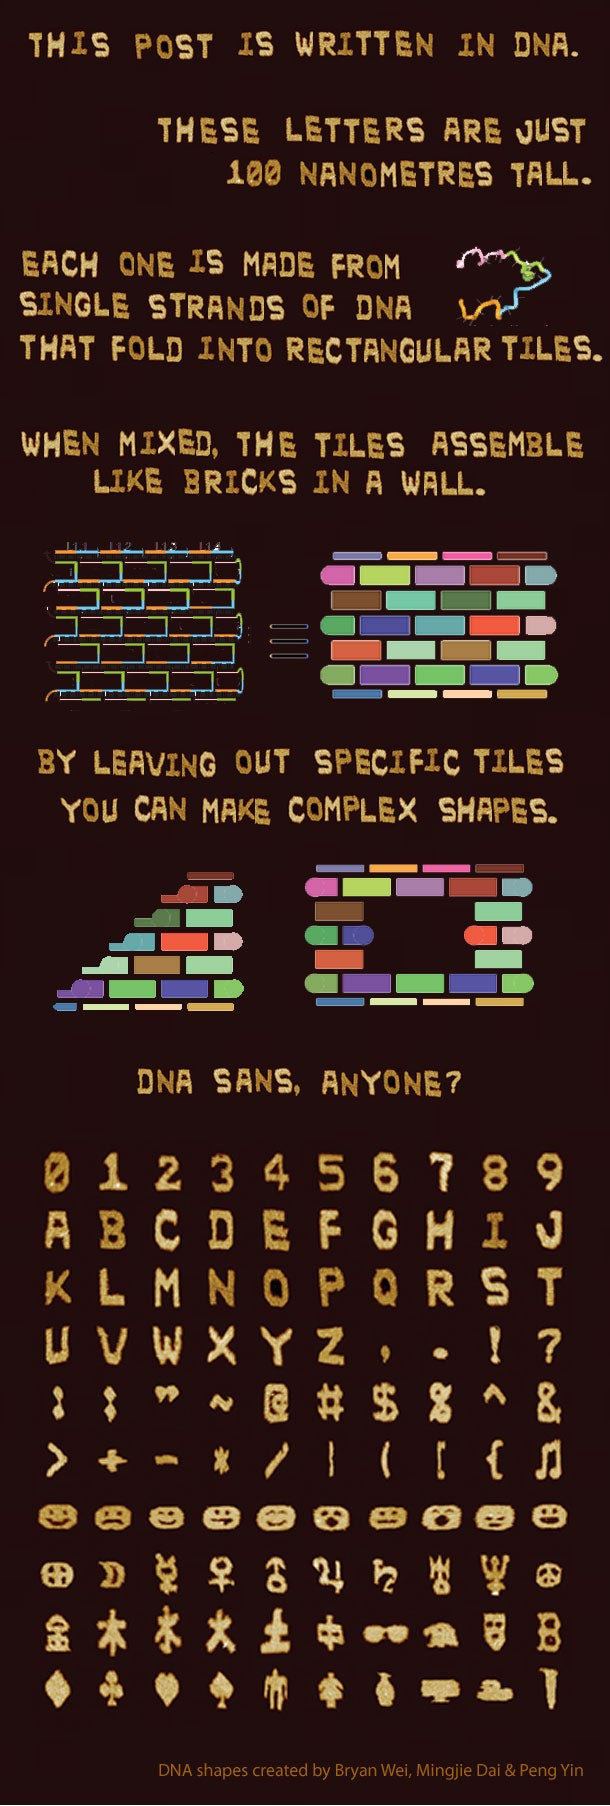 Harvard Scientists Make Graphic Designers Look Lazy by Using DNA to Create a New Font